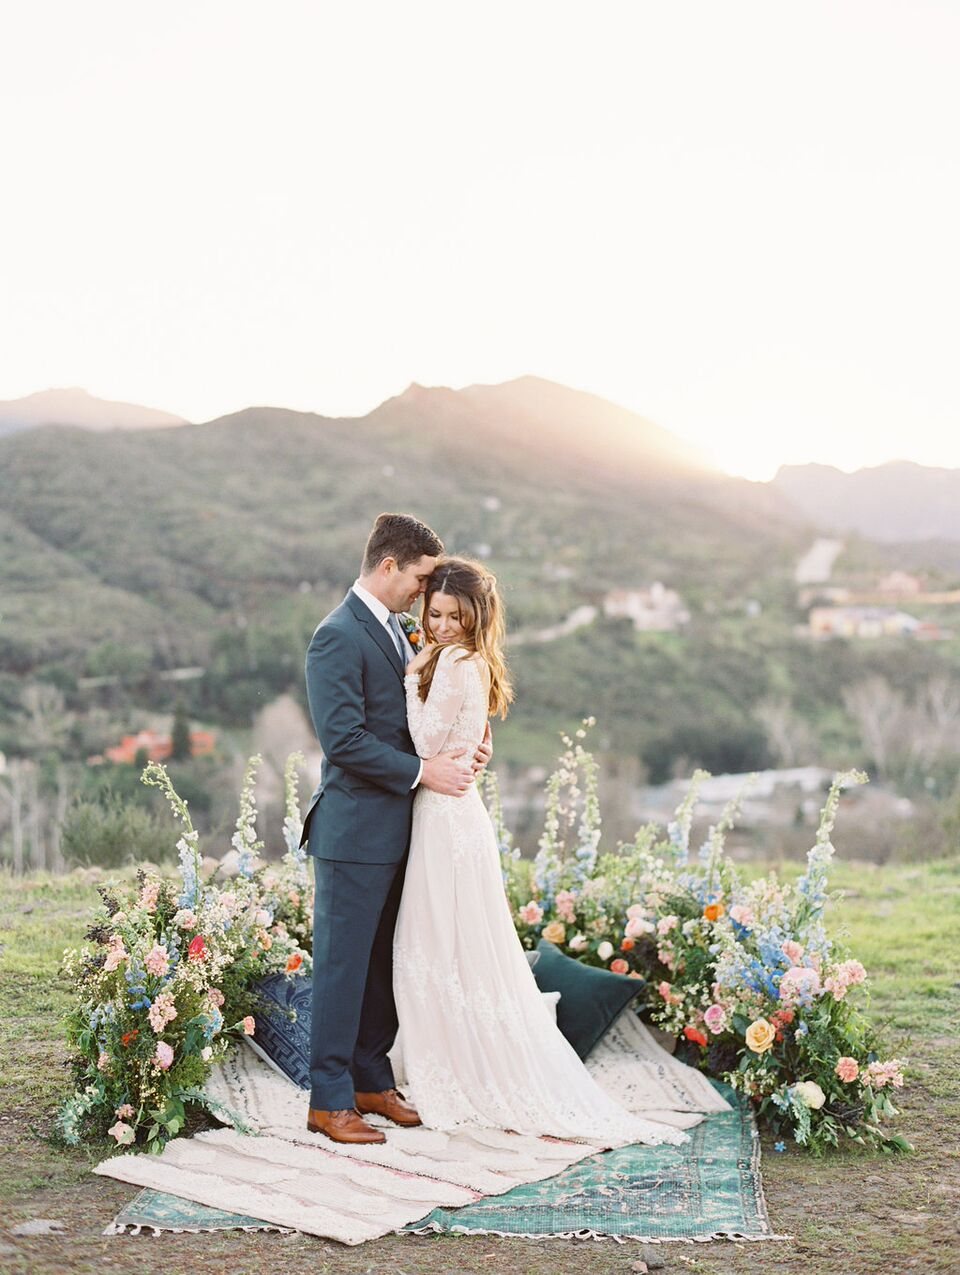 Forrest and J - A Boho Love Story - Triunfo Creek Vineyards Styled Shoot - Colorful Boho Wedding inspo